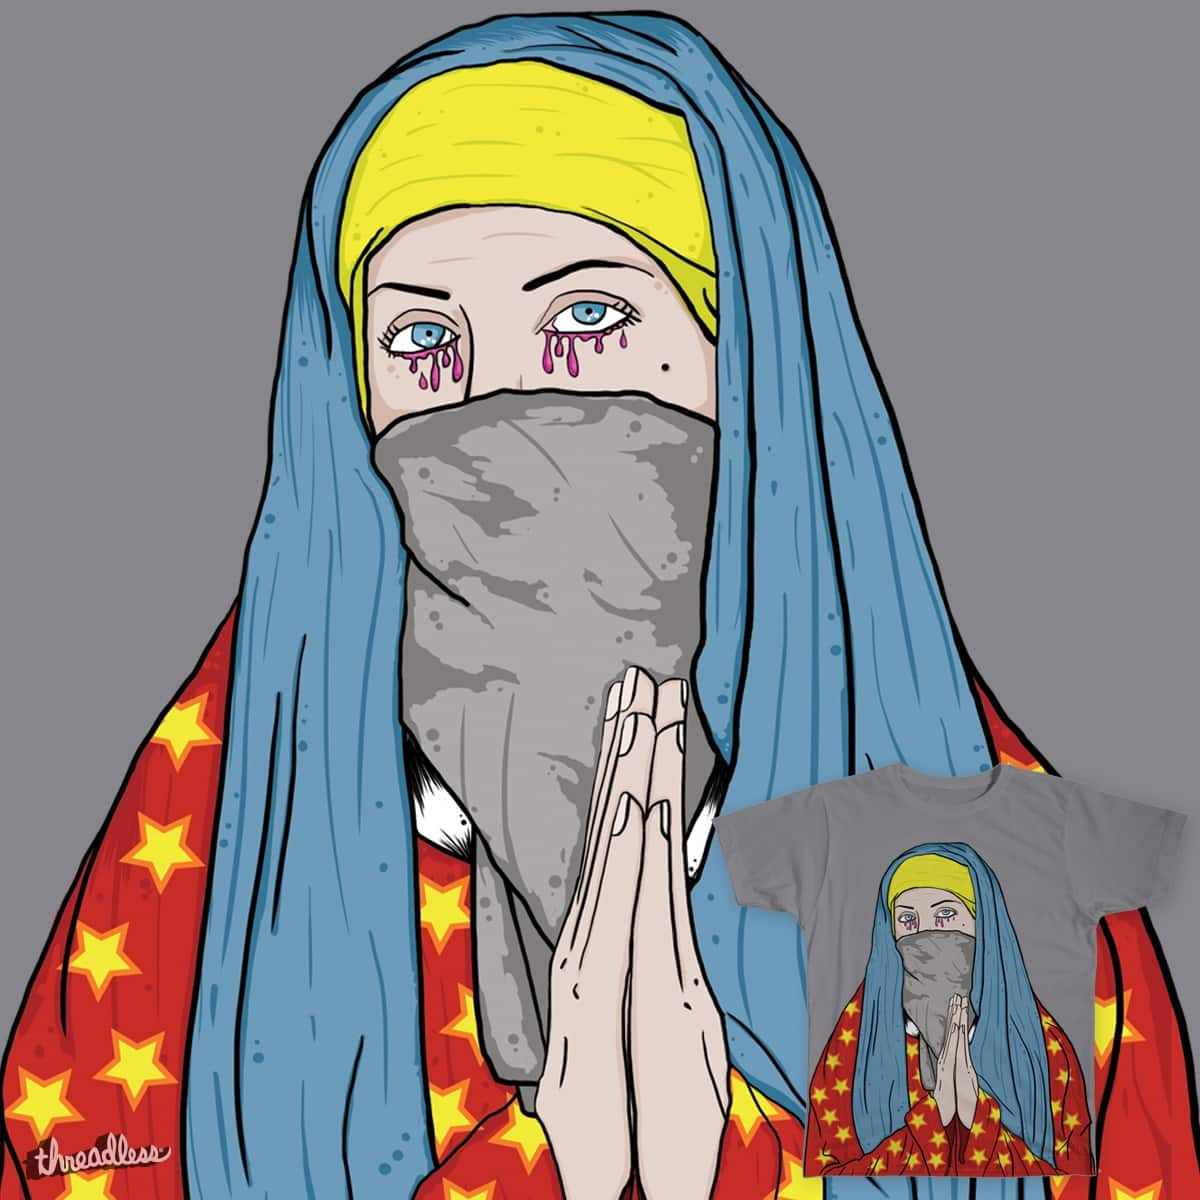 Guadalupe by LDOTM on Threadless